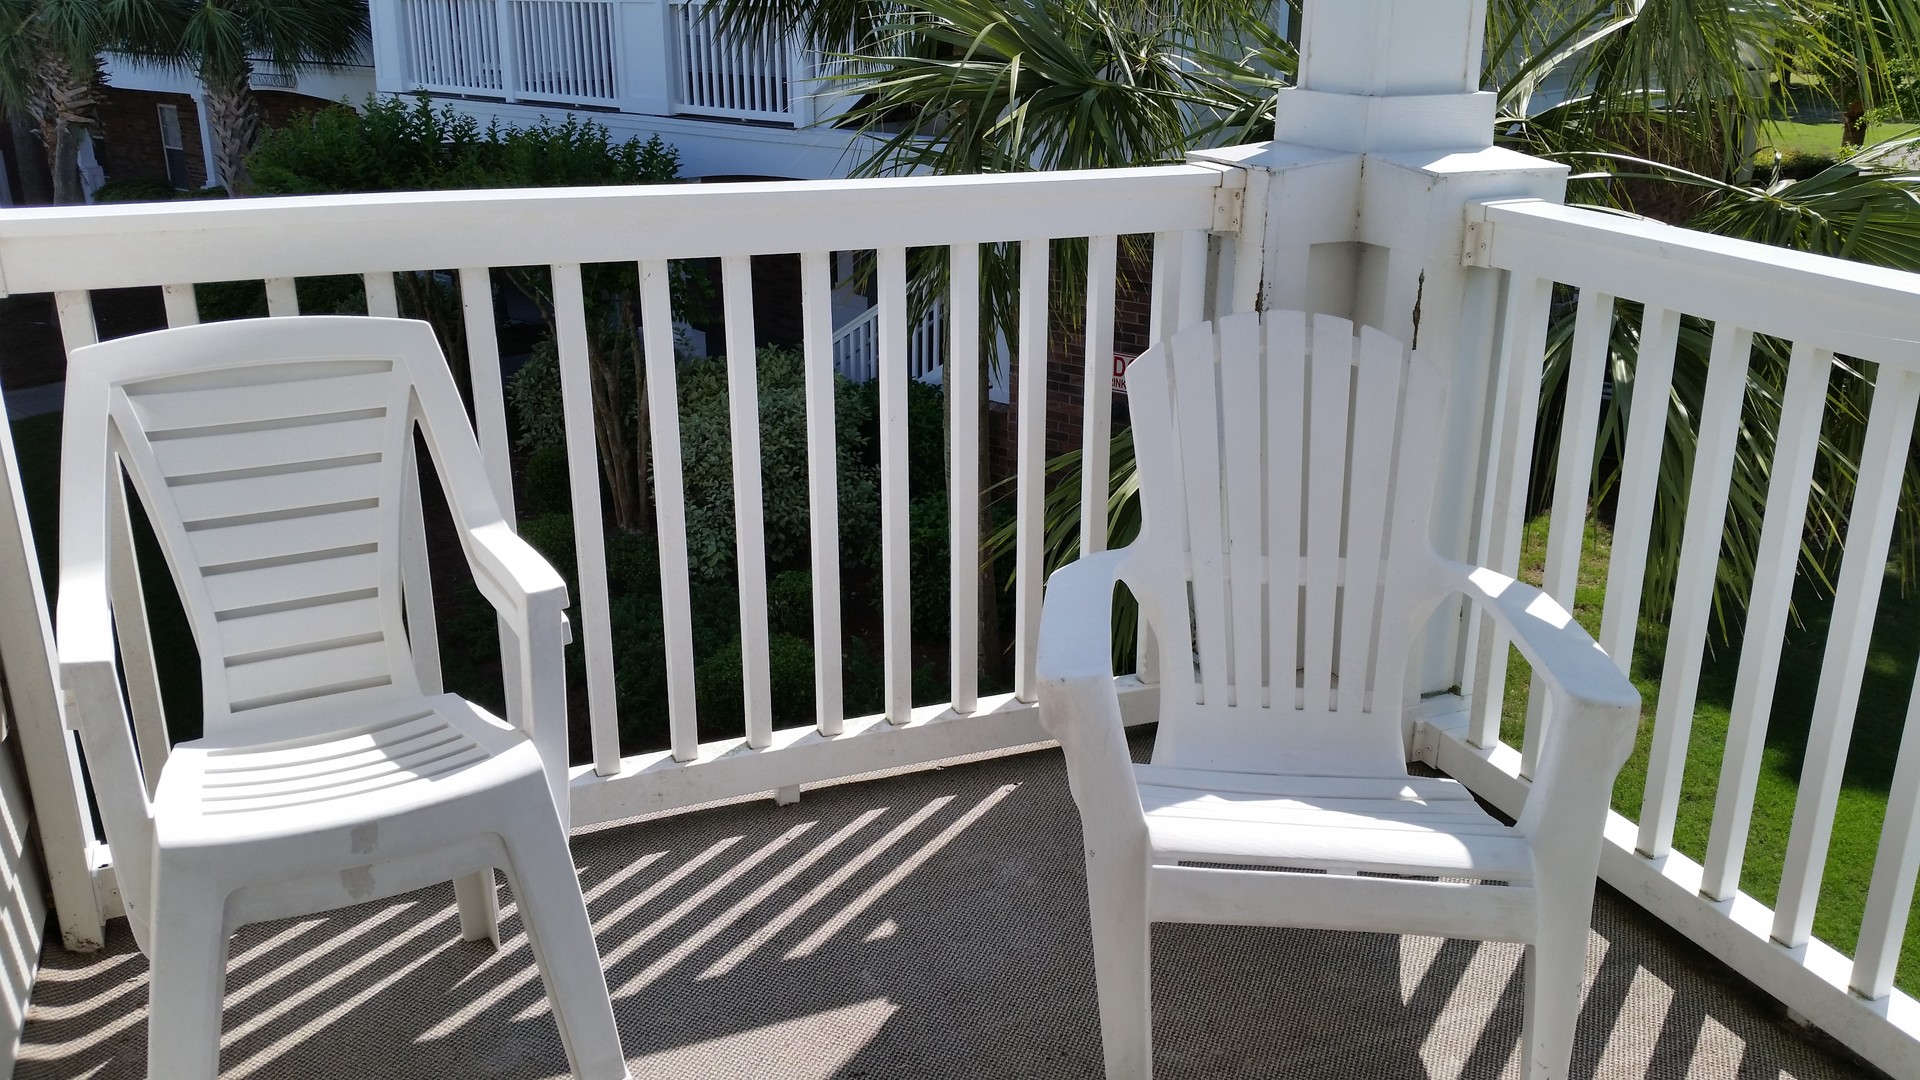 3 Bed 2 Bath Furnished Condo At Barefoot Resort In Ironwood Myrtle Beach,SC